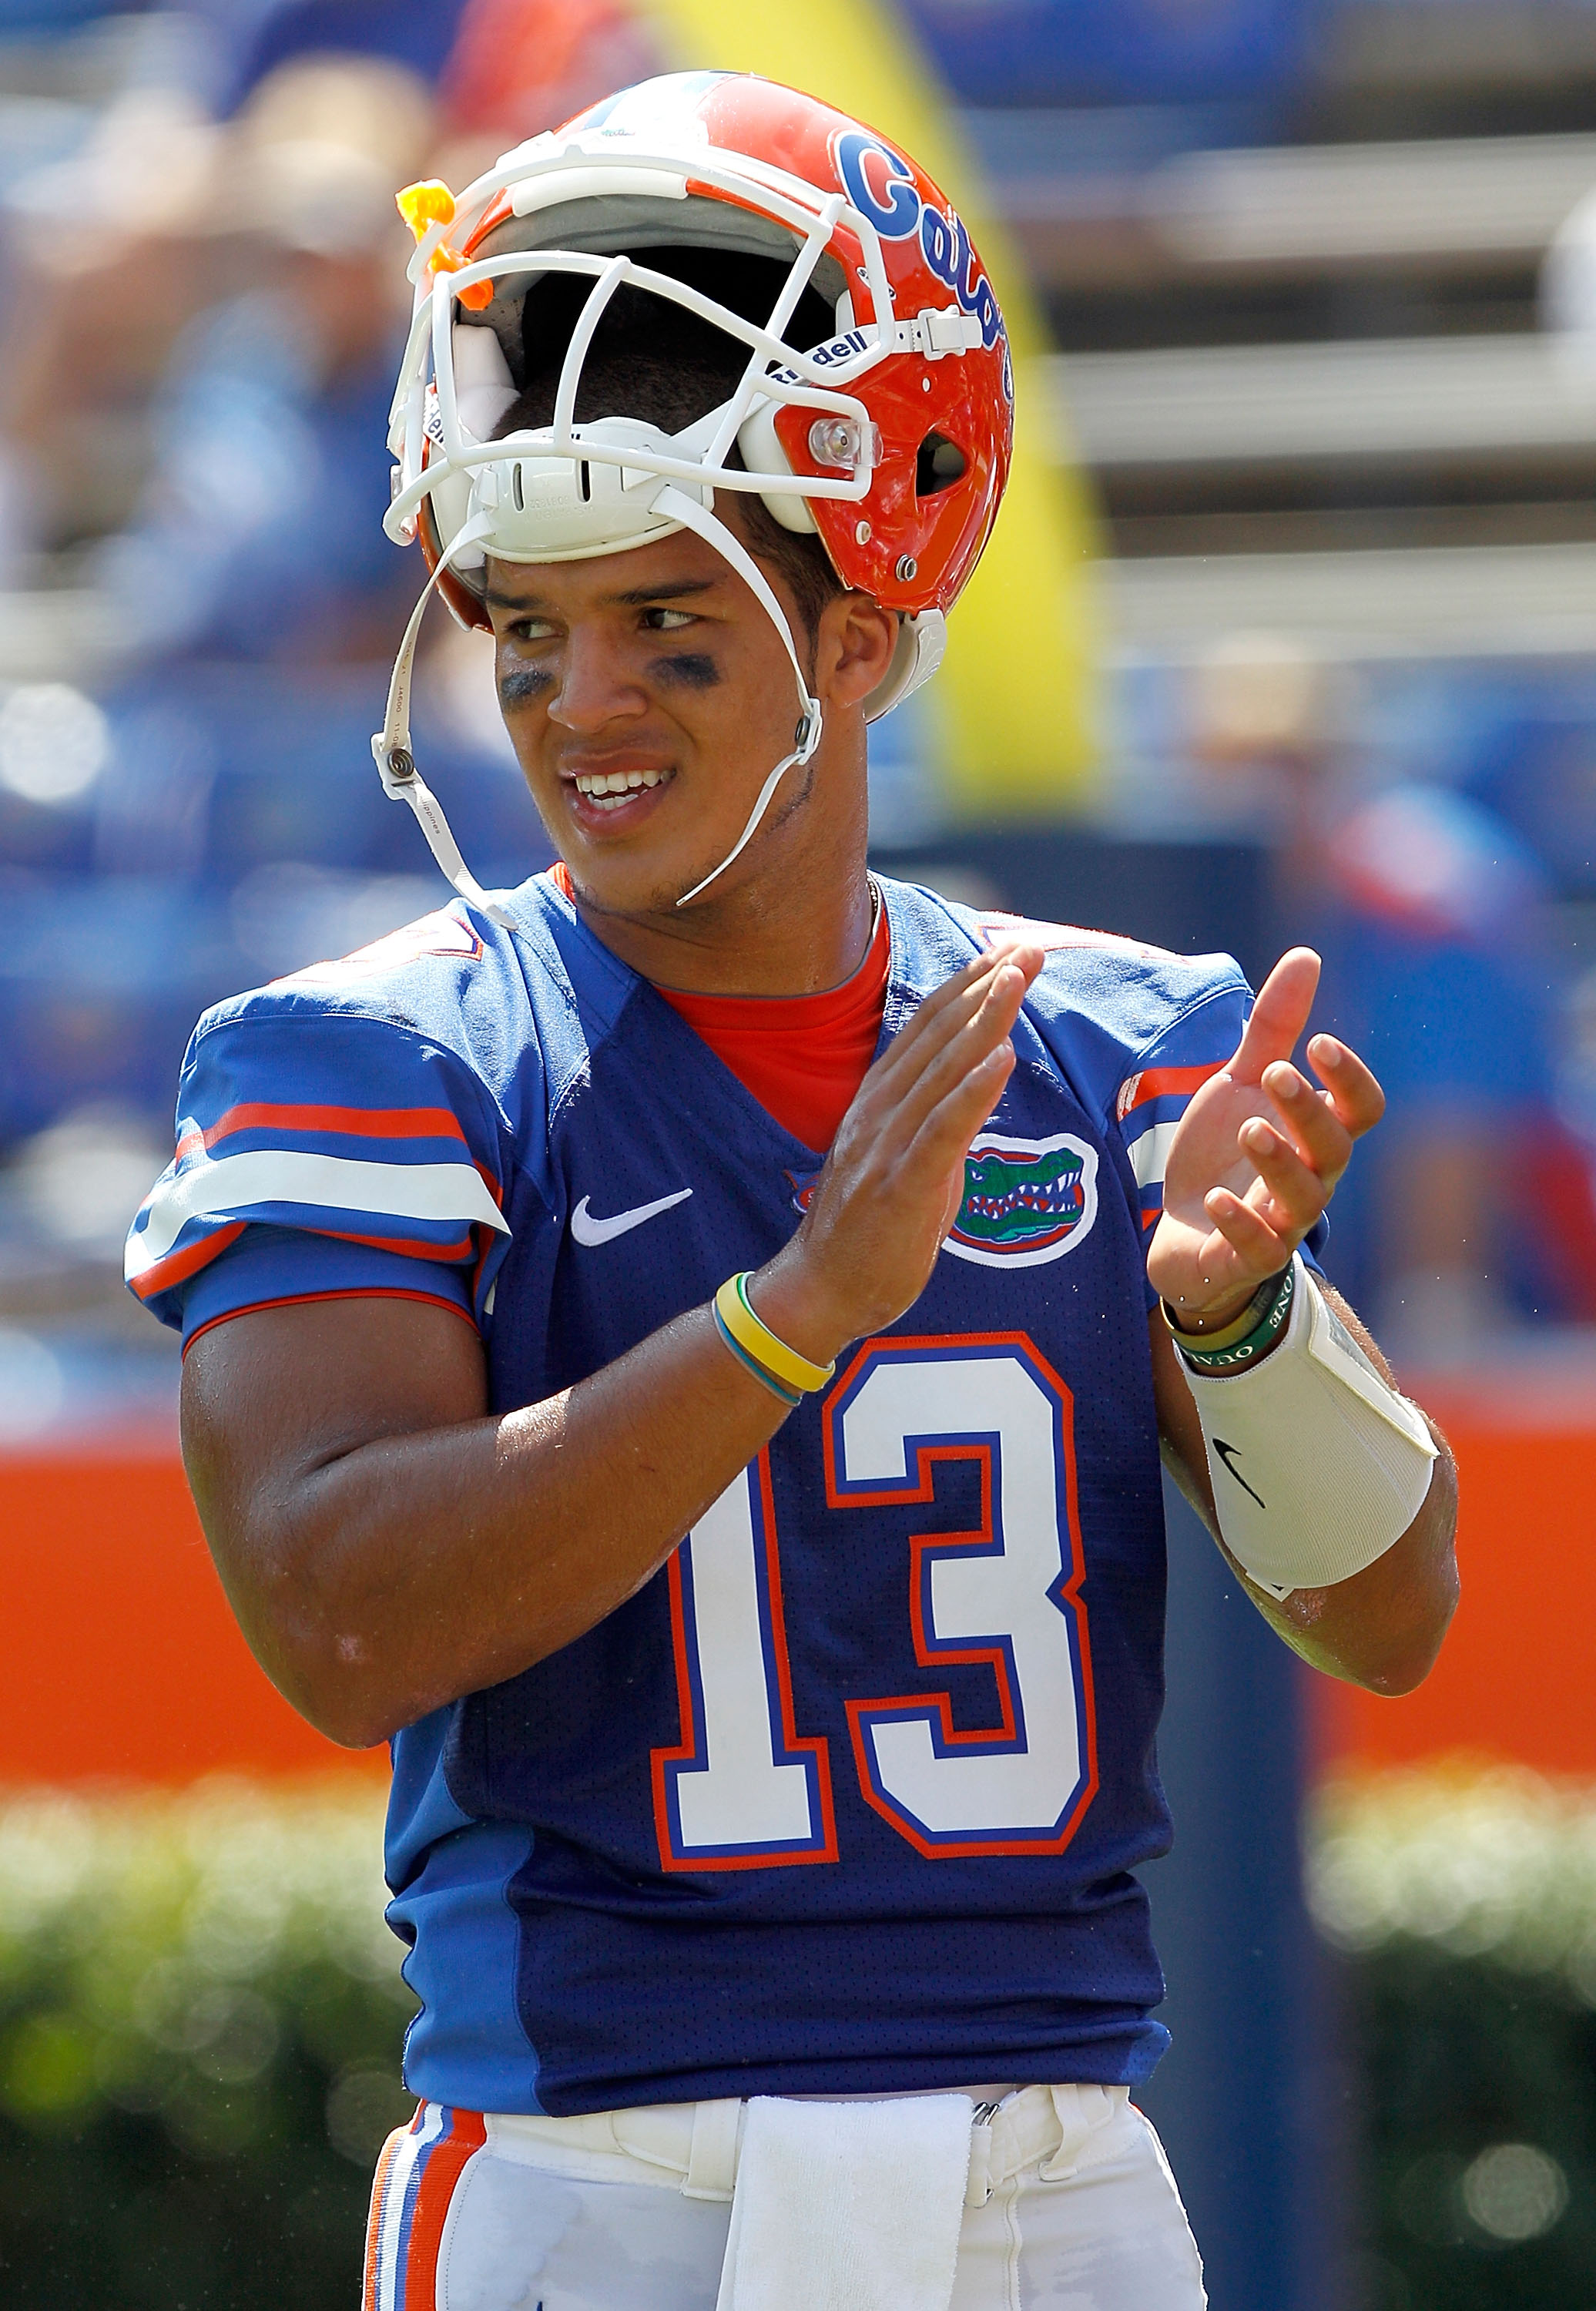 GAINESVILLE, FL - SEPTEMBER 11:  Quarterback Trey Burton #13 of the Florida Gators claps prior to a game against the South Florida Bulls at Ben Hill Griffin Stadium on September 11, 2010 in Gainesville, Florida.  (Photo by Sam Greenwood/Getty Images)